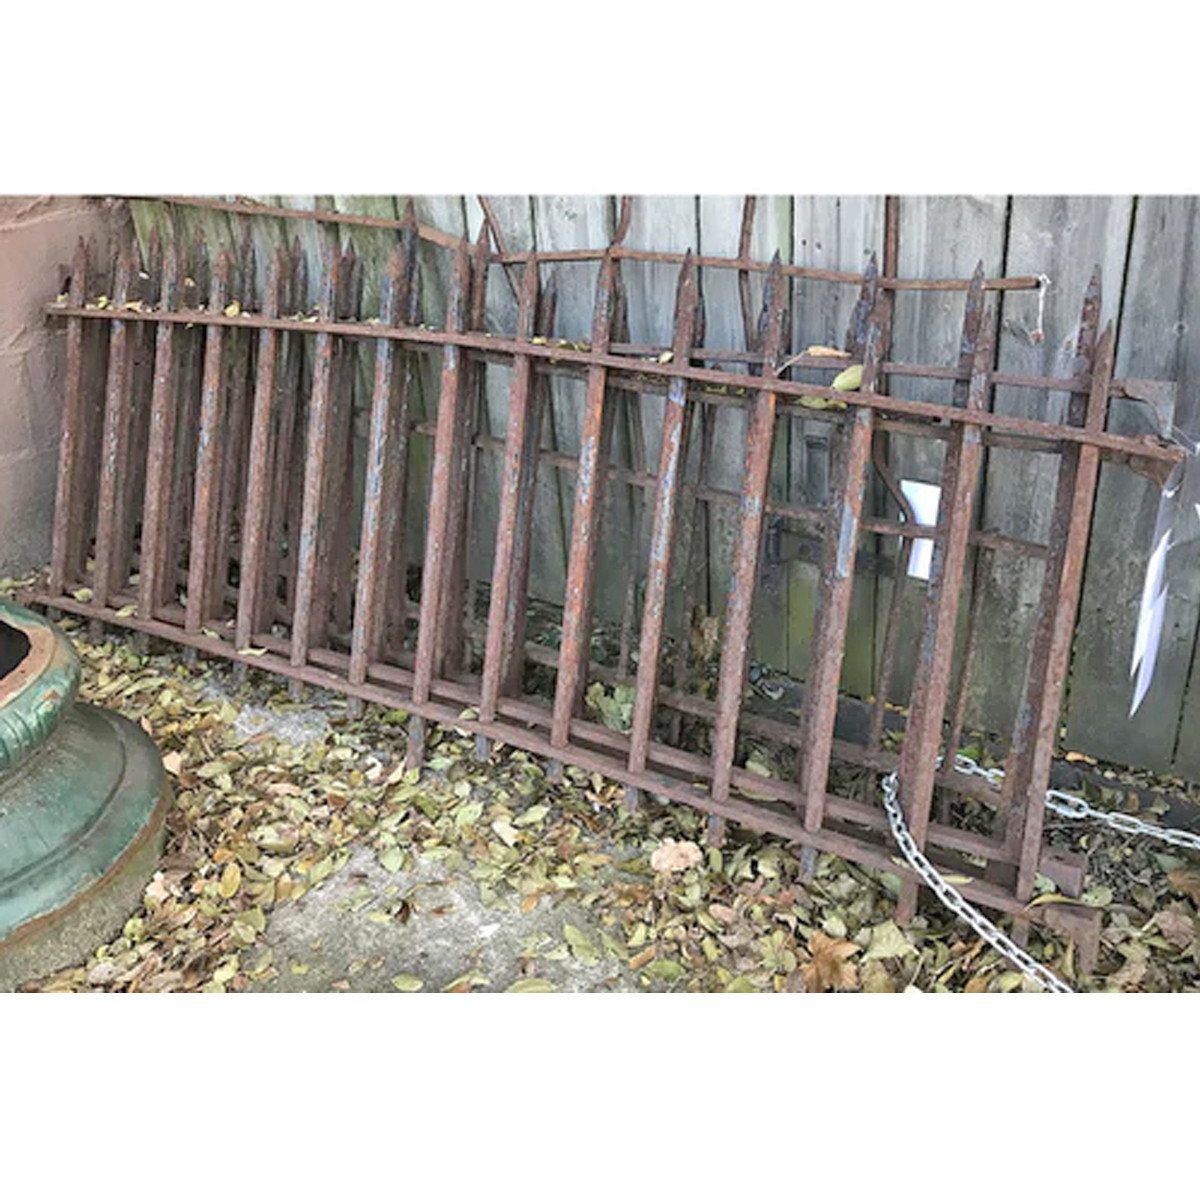 S17075 - Antique wrought Iron Fencing